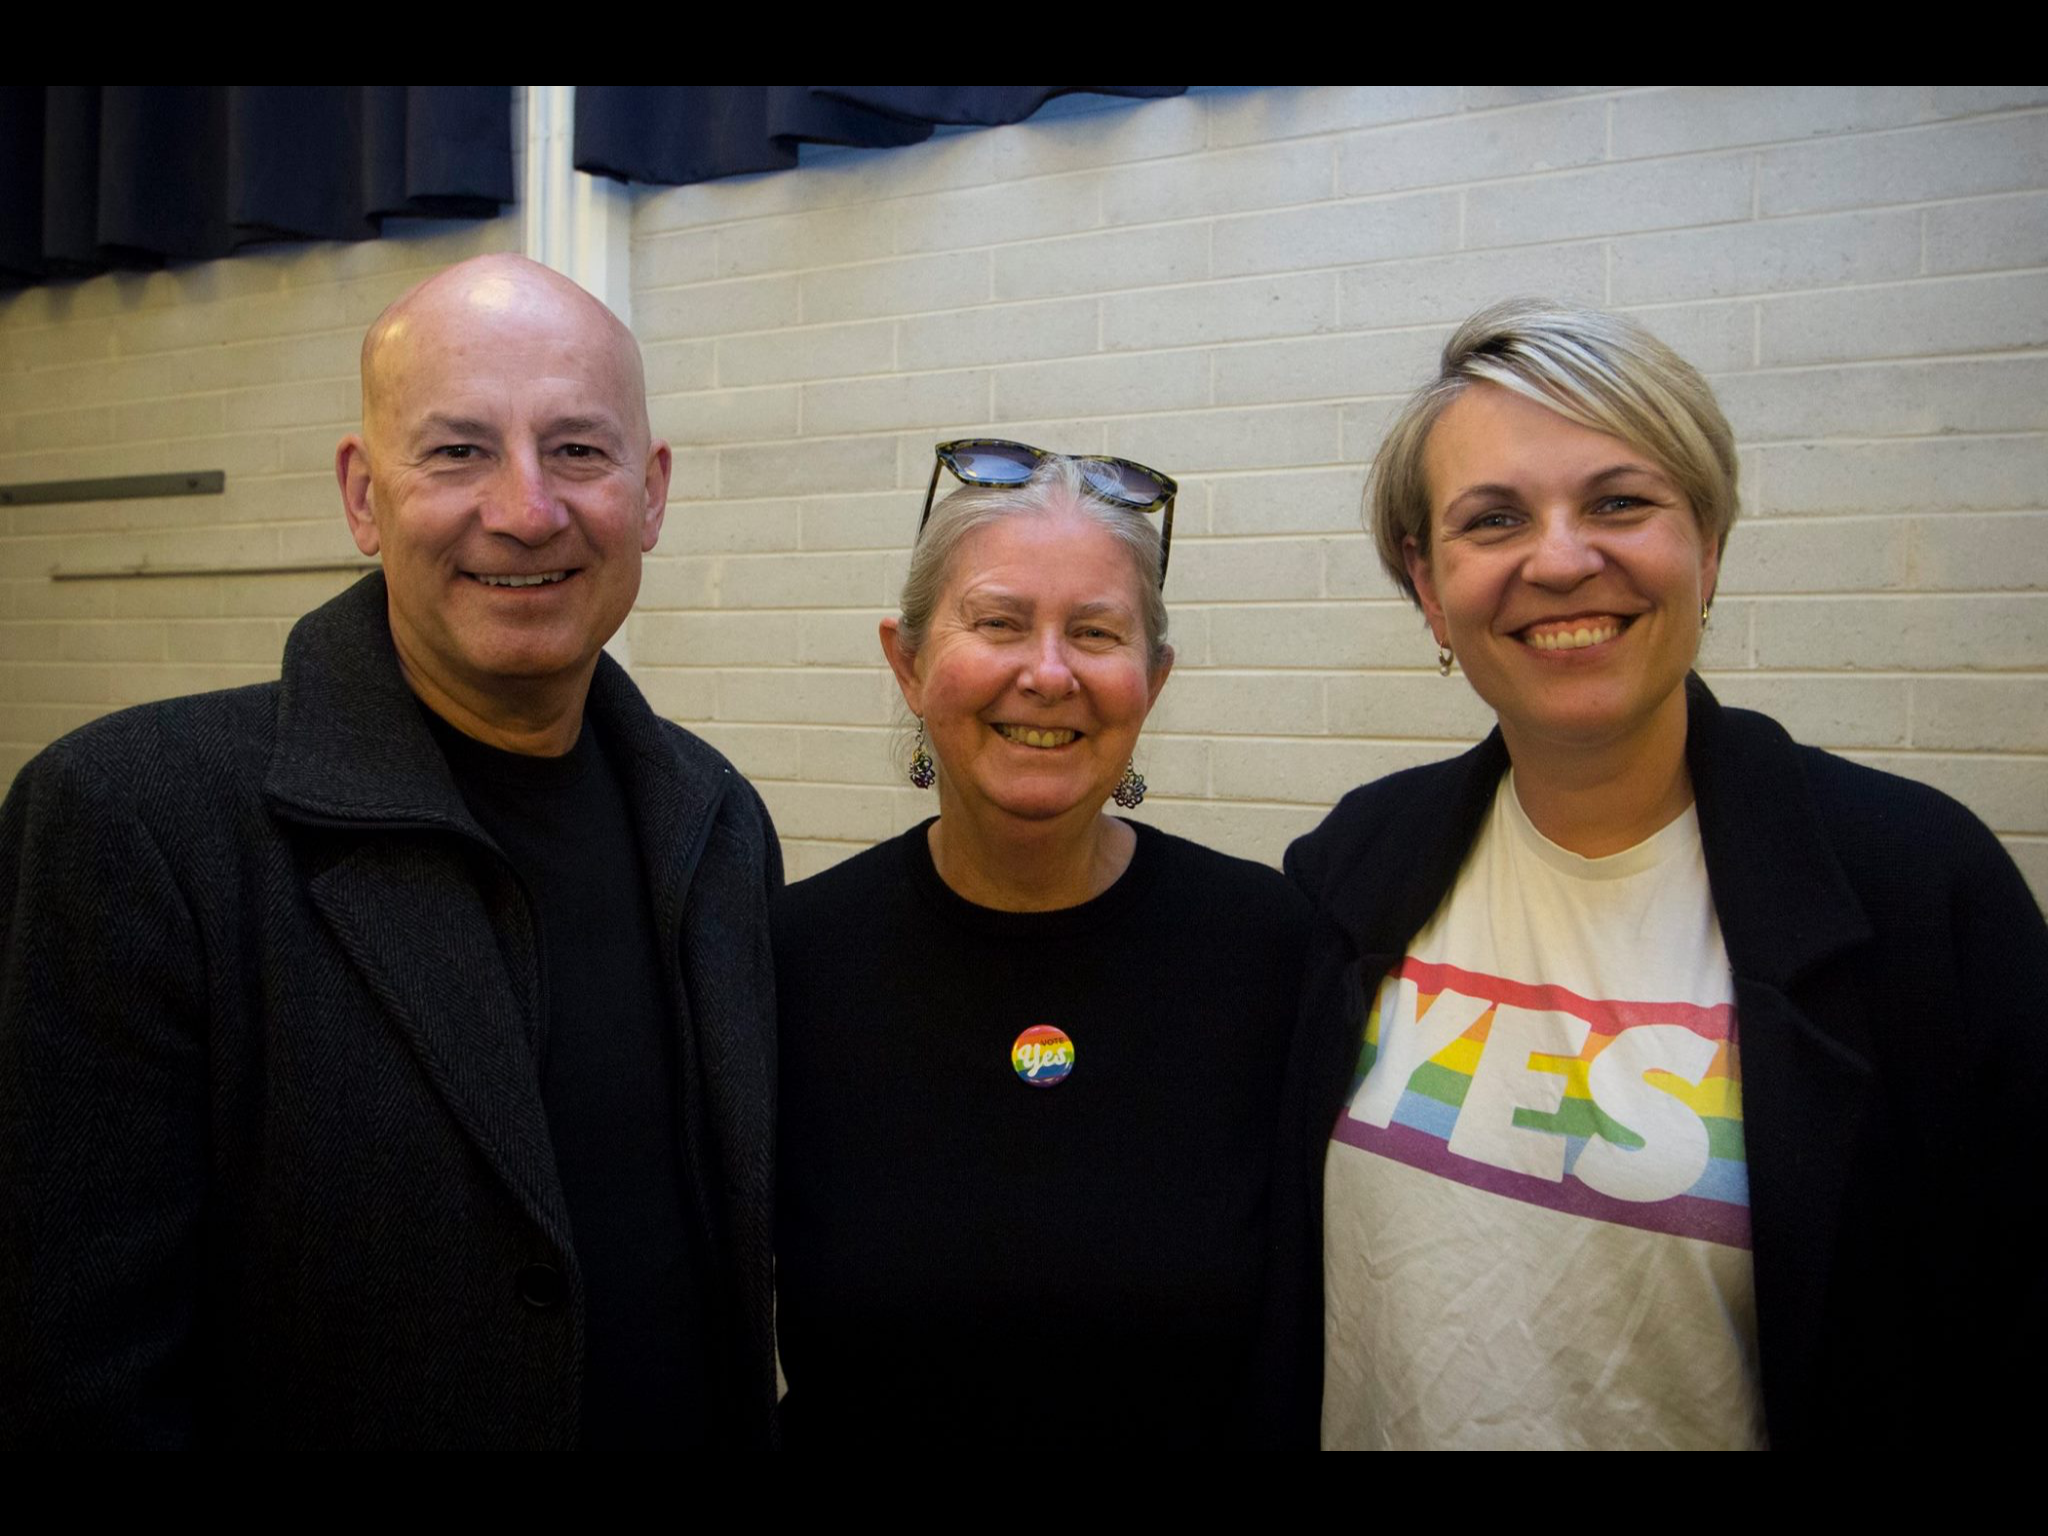 Vice President for PFLAG Ruth Green, with supporters of Marriage Equality John Robertson and Tanya Plibersek.